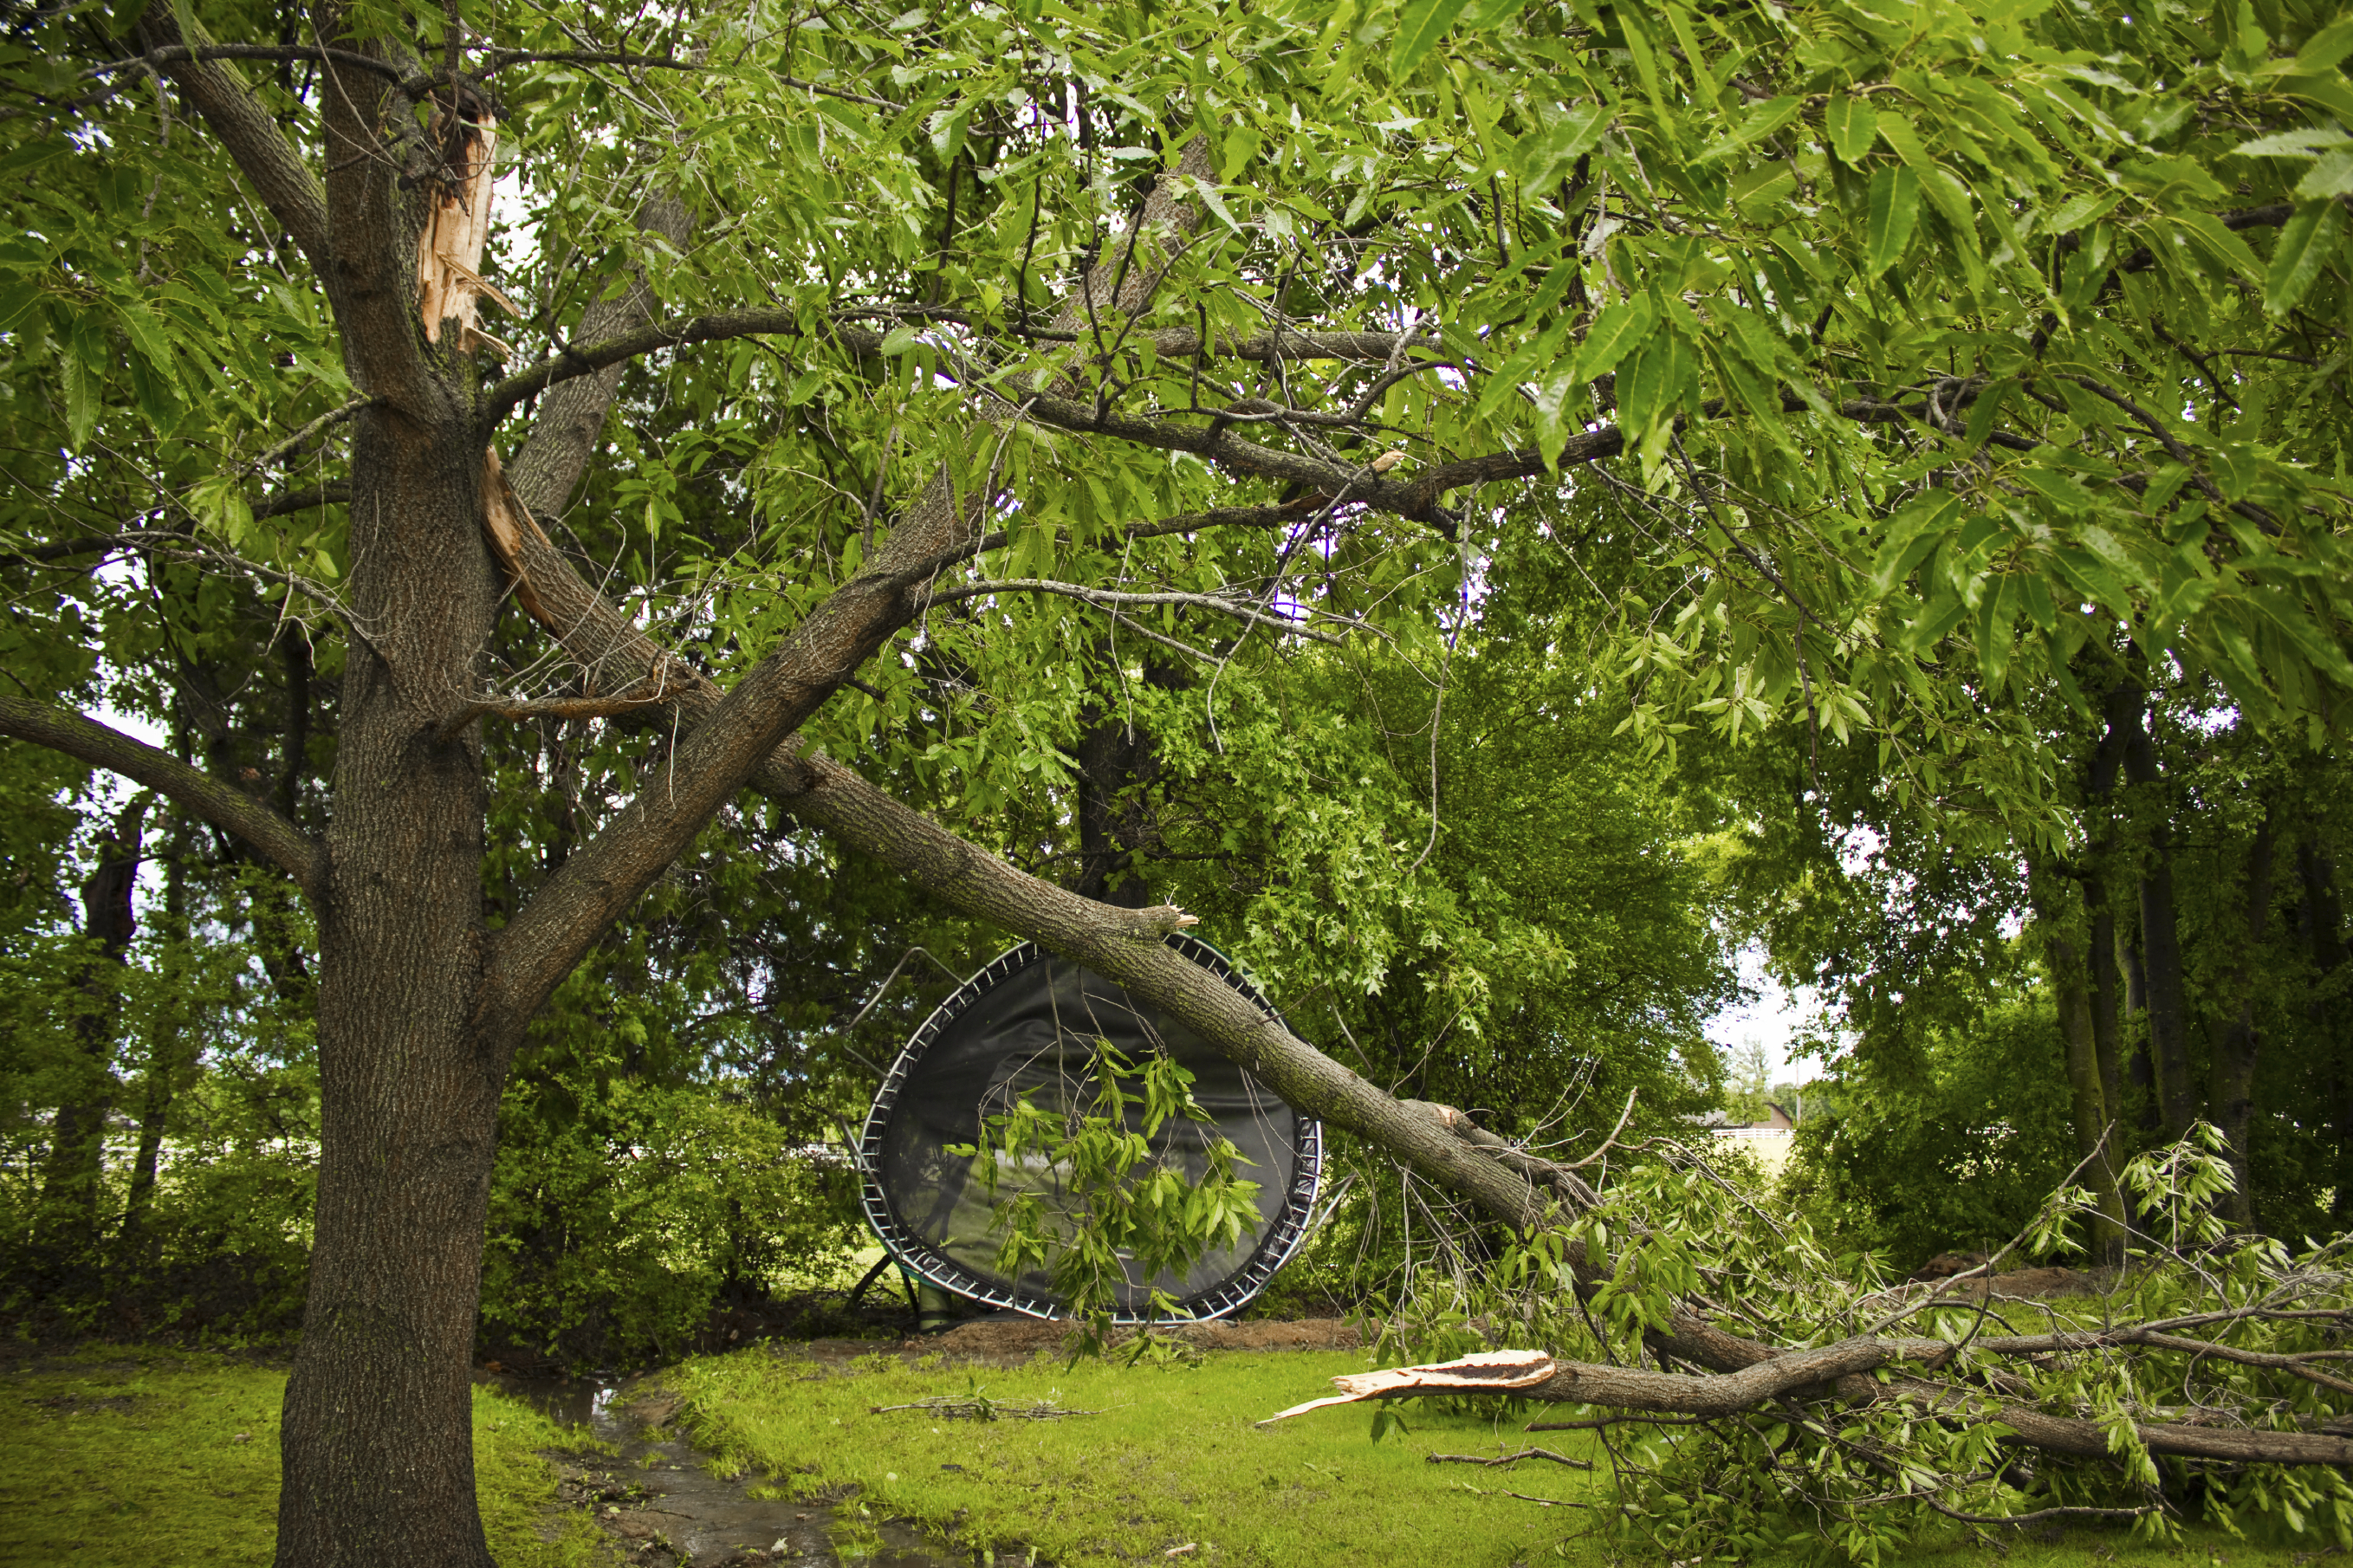 Storm-Damage-Tree-000041553368_Large.jpg